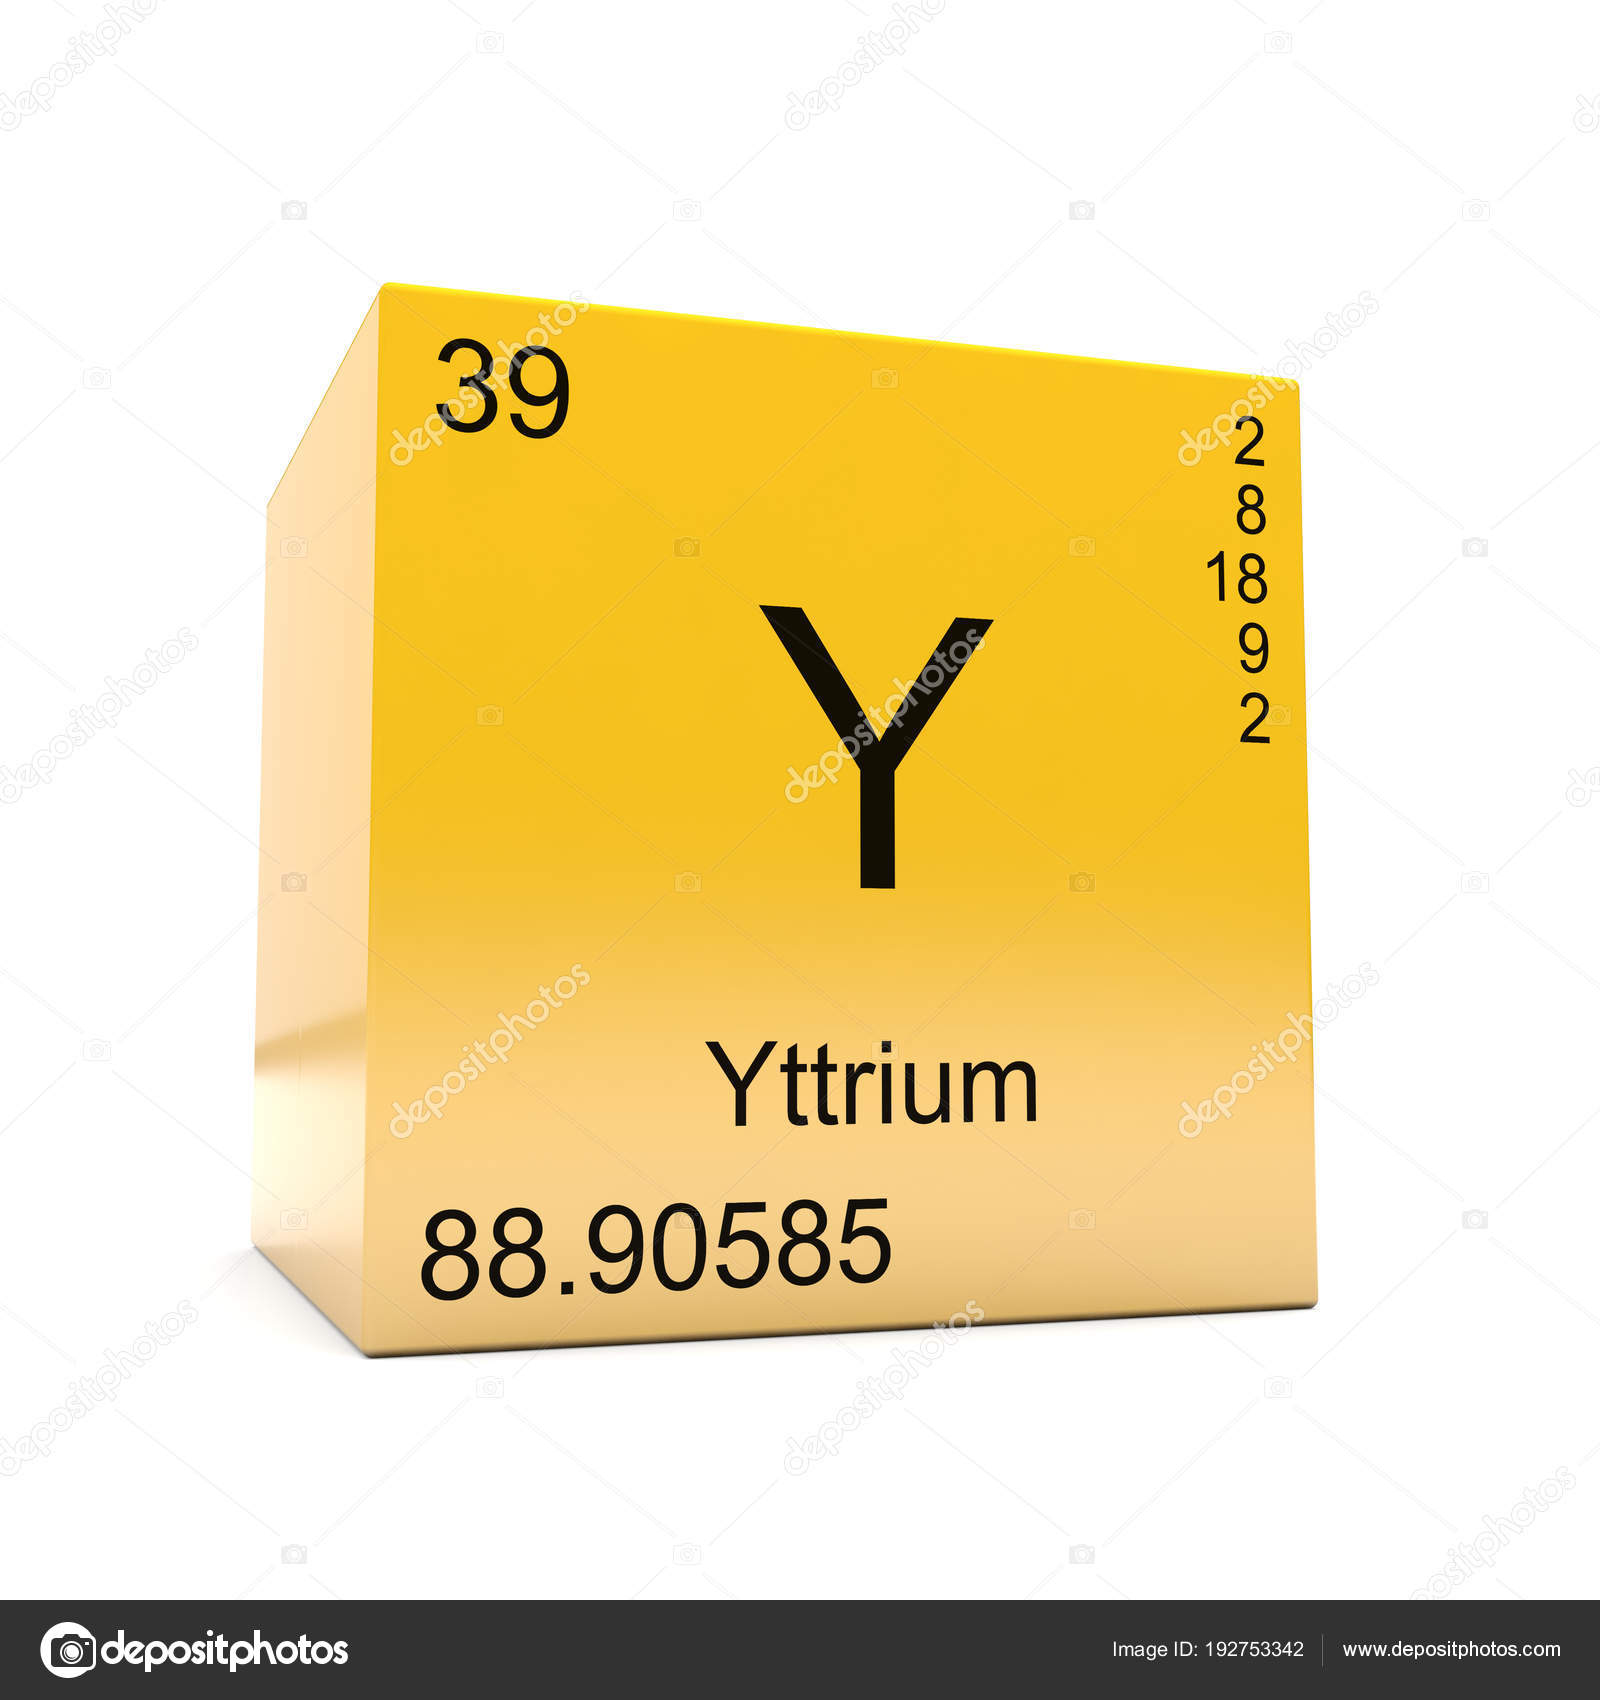 Yttrium Chemical Element Symbol Periodic Table Displayed Glossy